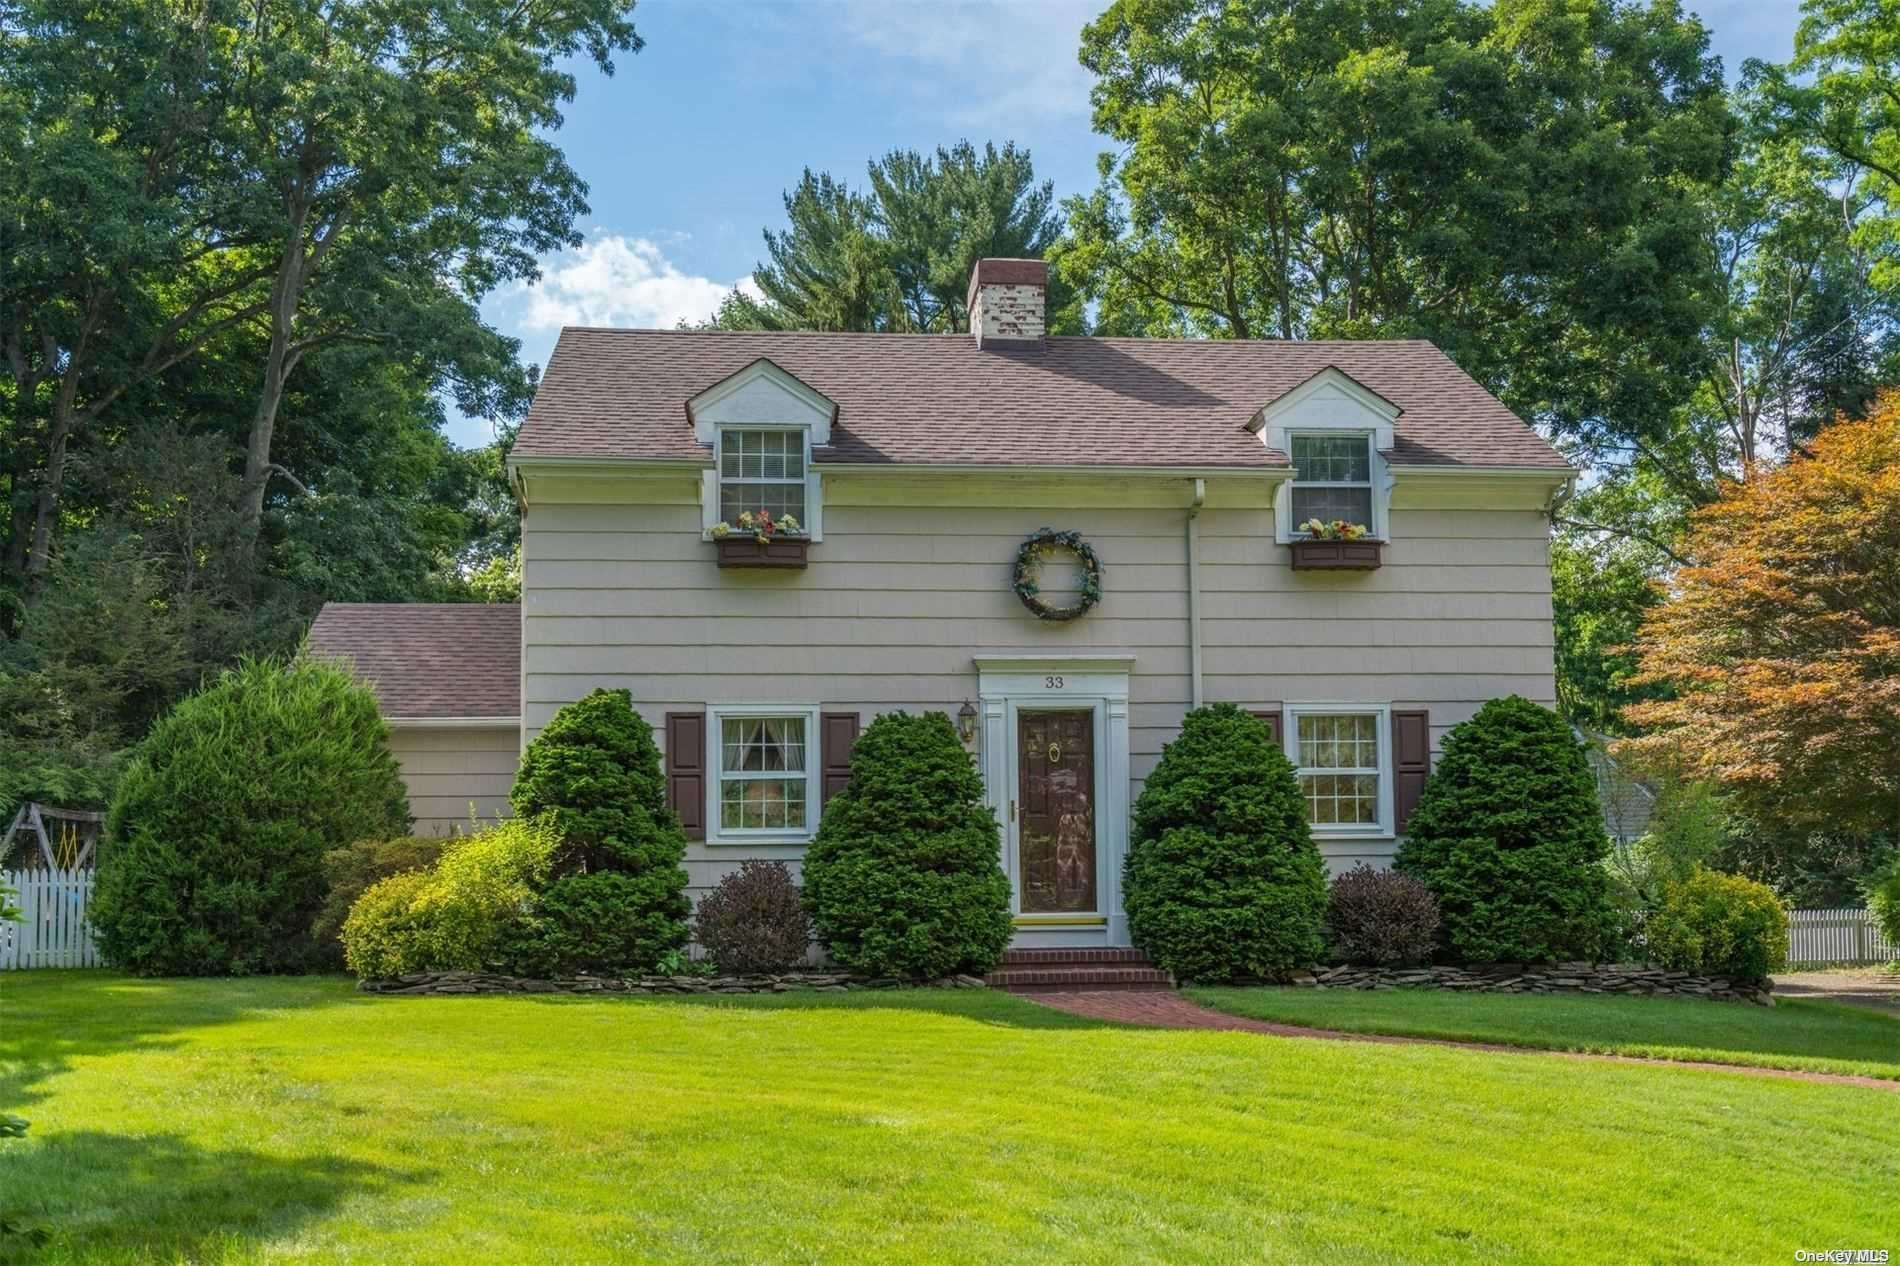 33 Amherst Court, Huntington, NY 11743 - MLS#: 3228163